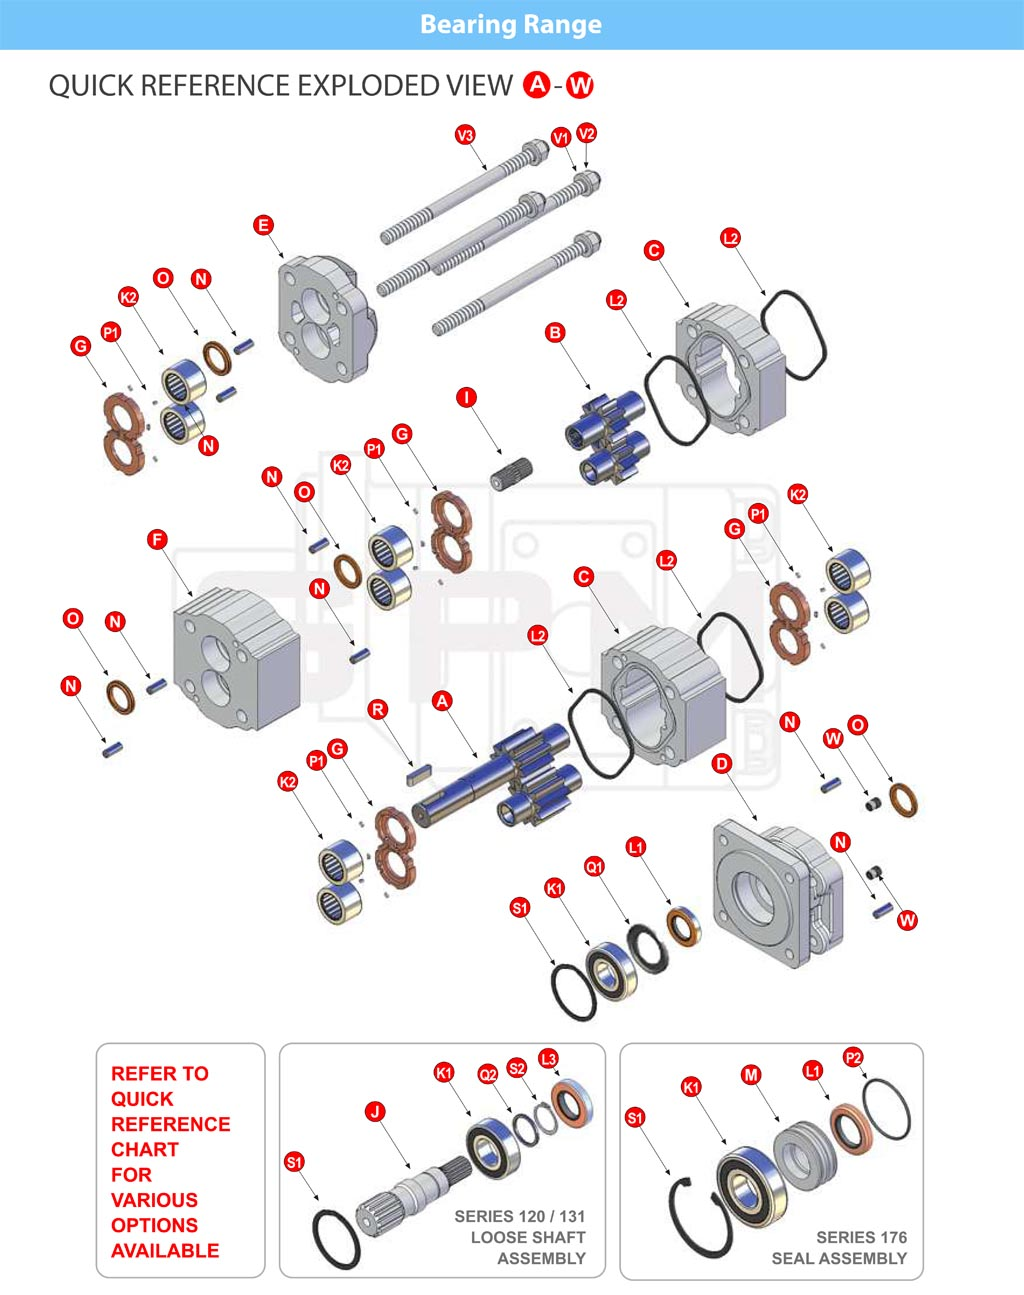 GPM Bearing Pumps Exploded View